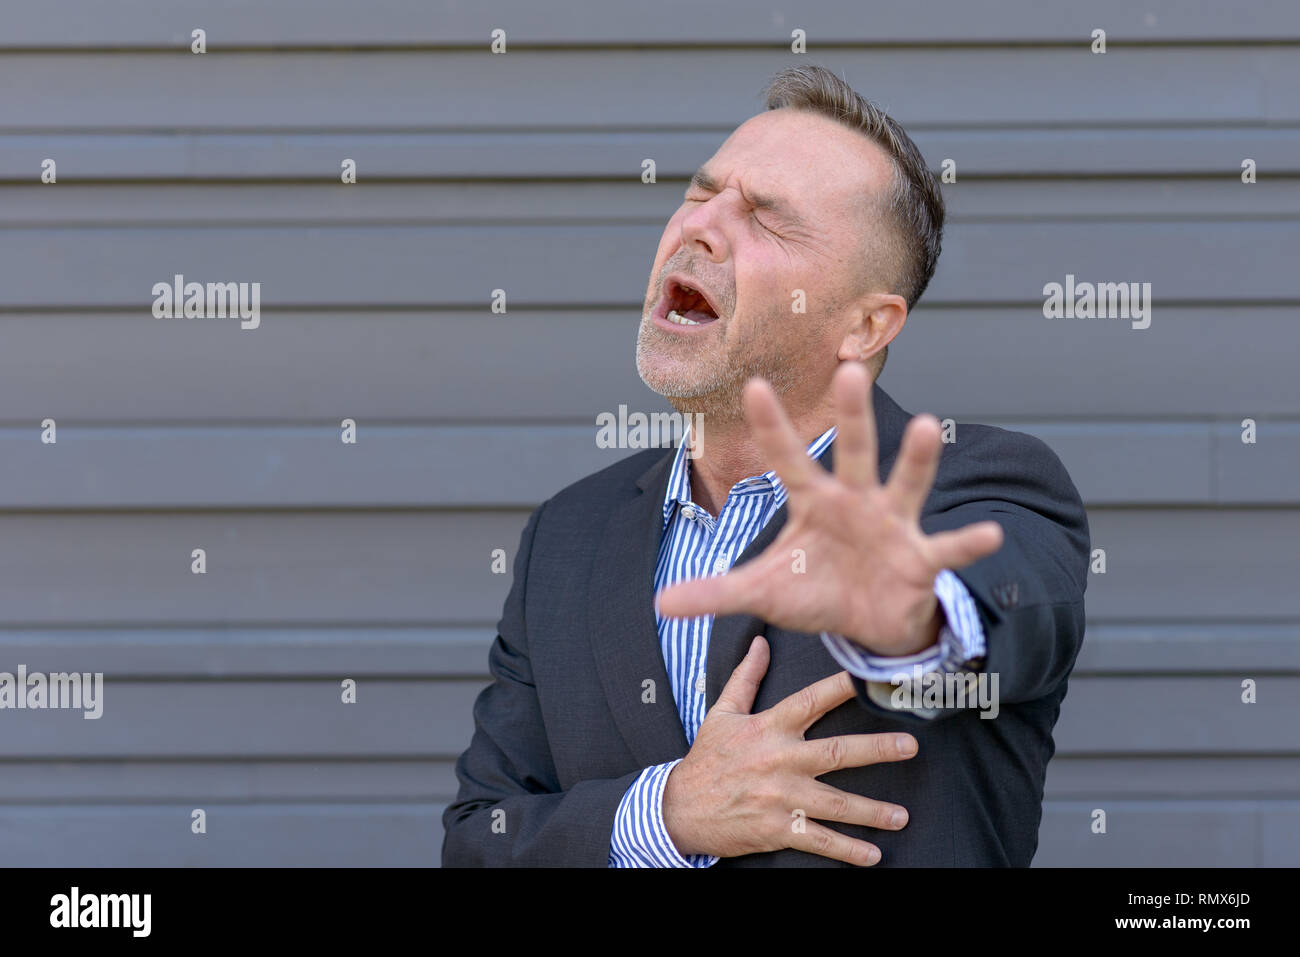 Businessman clutching his chest in pain or anguish while reaching out with his other hand in desperation against a grey wall with copy space - Stock Image